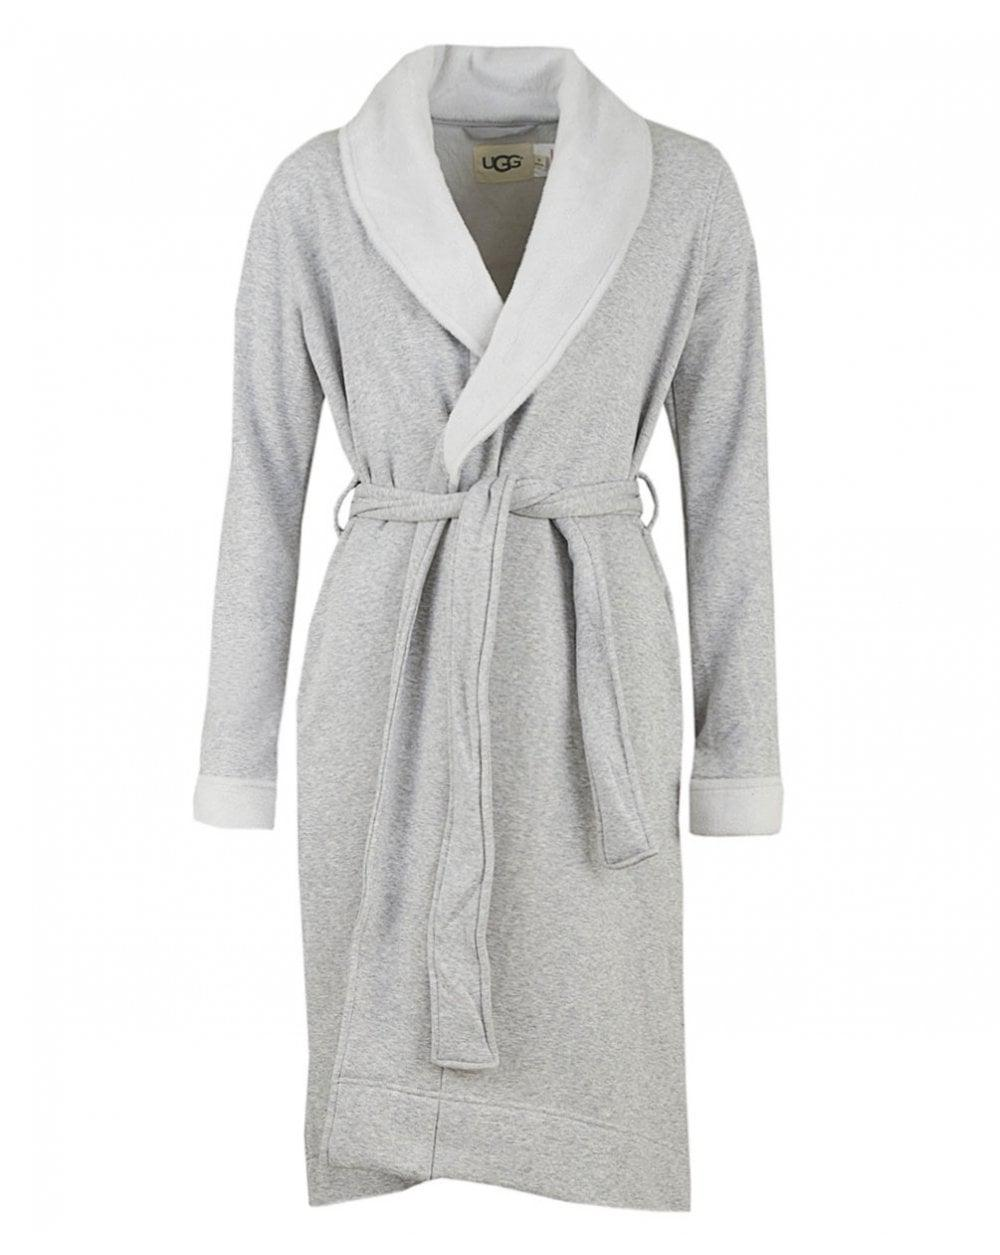 4143776dca UGG. Women s Gray Duffield Ii Fleece Lined Dressing Gown. £120 From Psyche